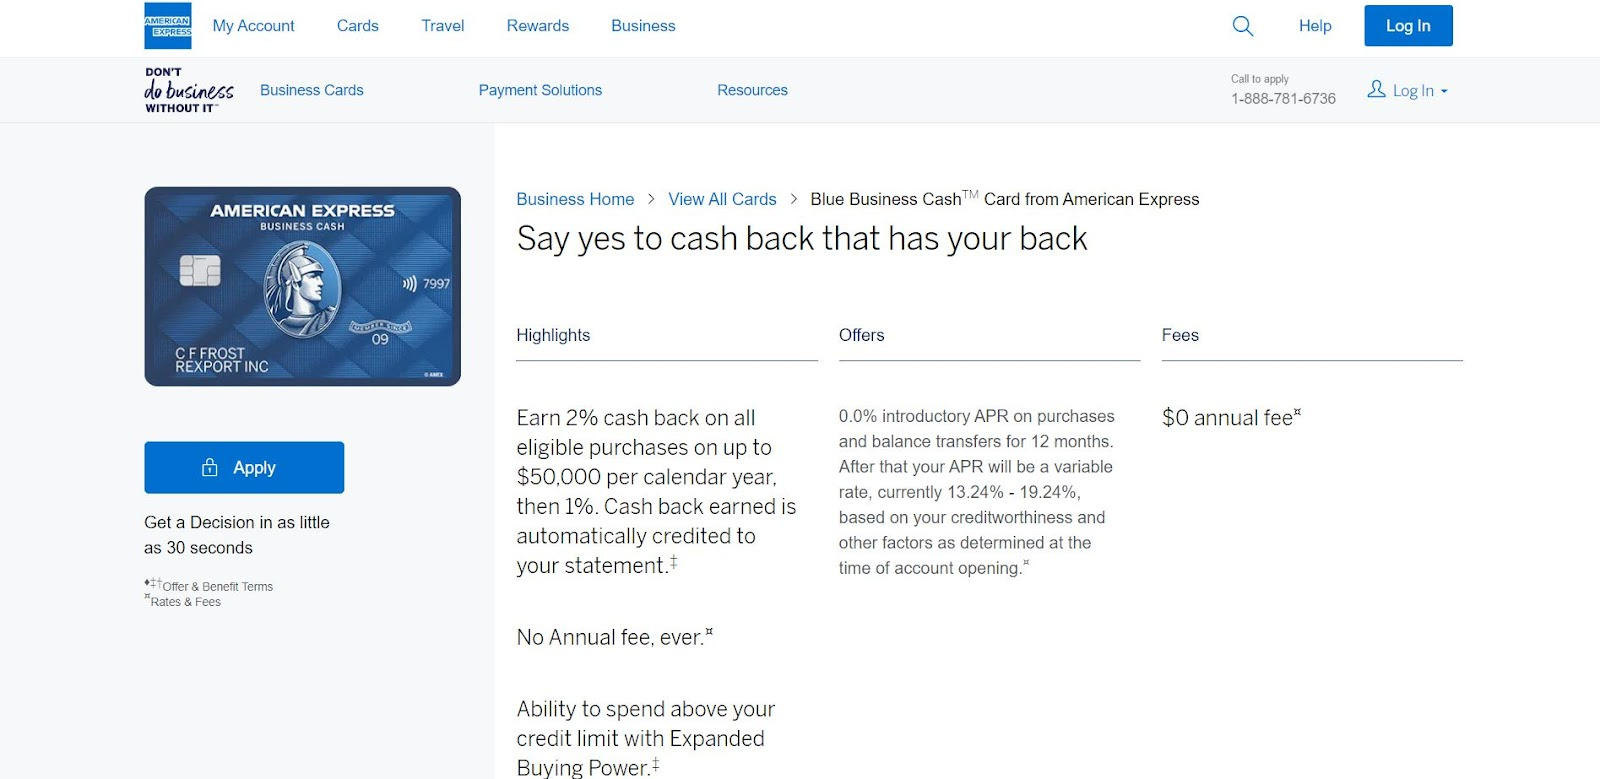 American Express Blue Business Cash Card: The Top 10 Business Credit Cards for Small Businesses